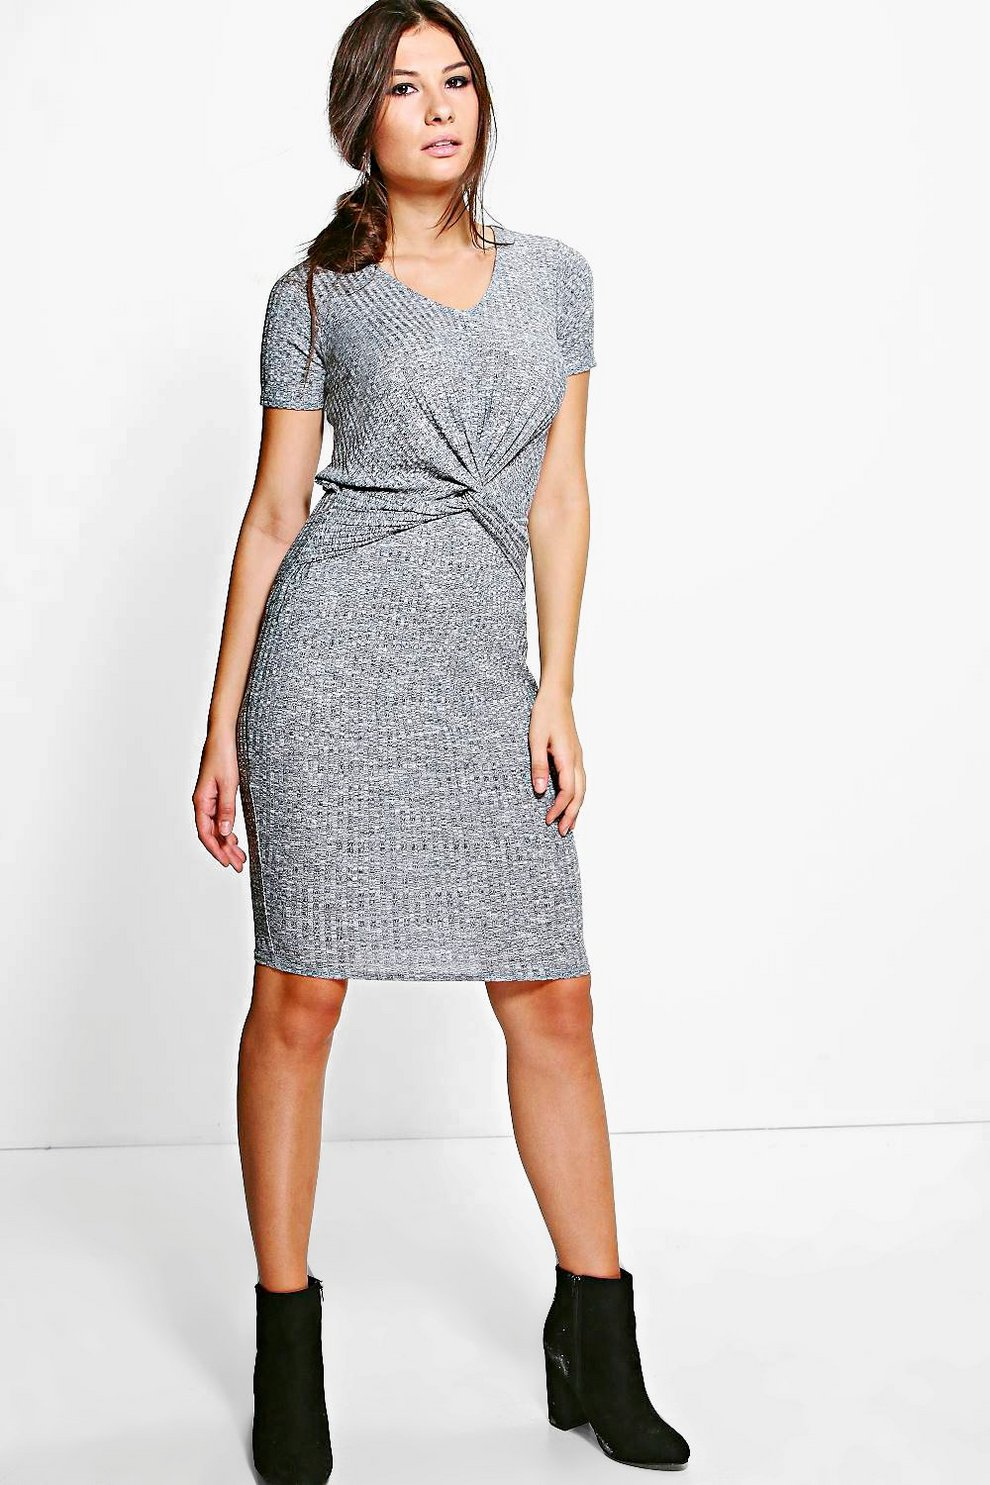 76a145cb0481 Mireille Knot Front Knitted Midi Dress